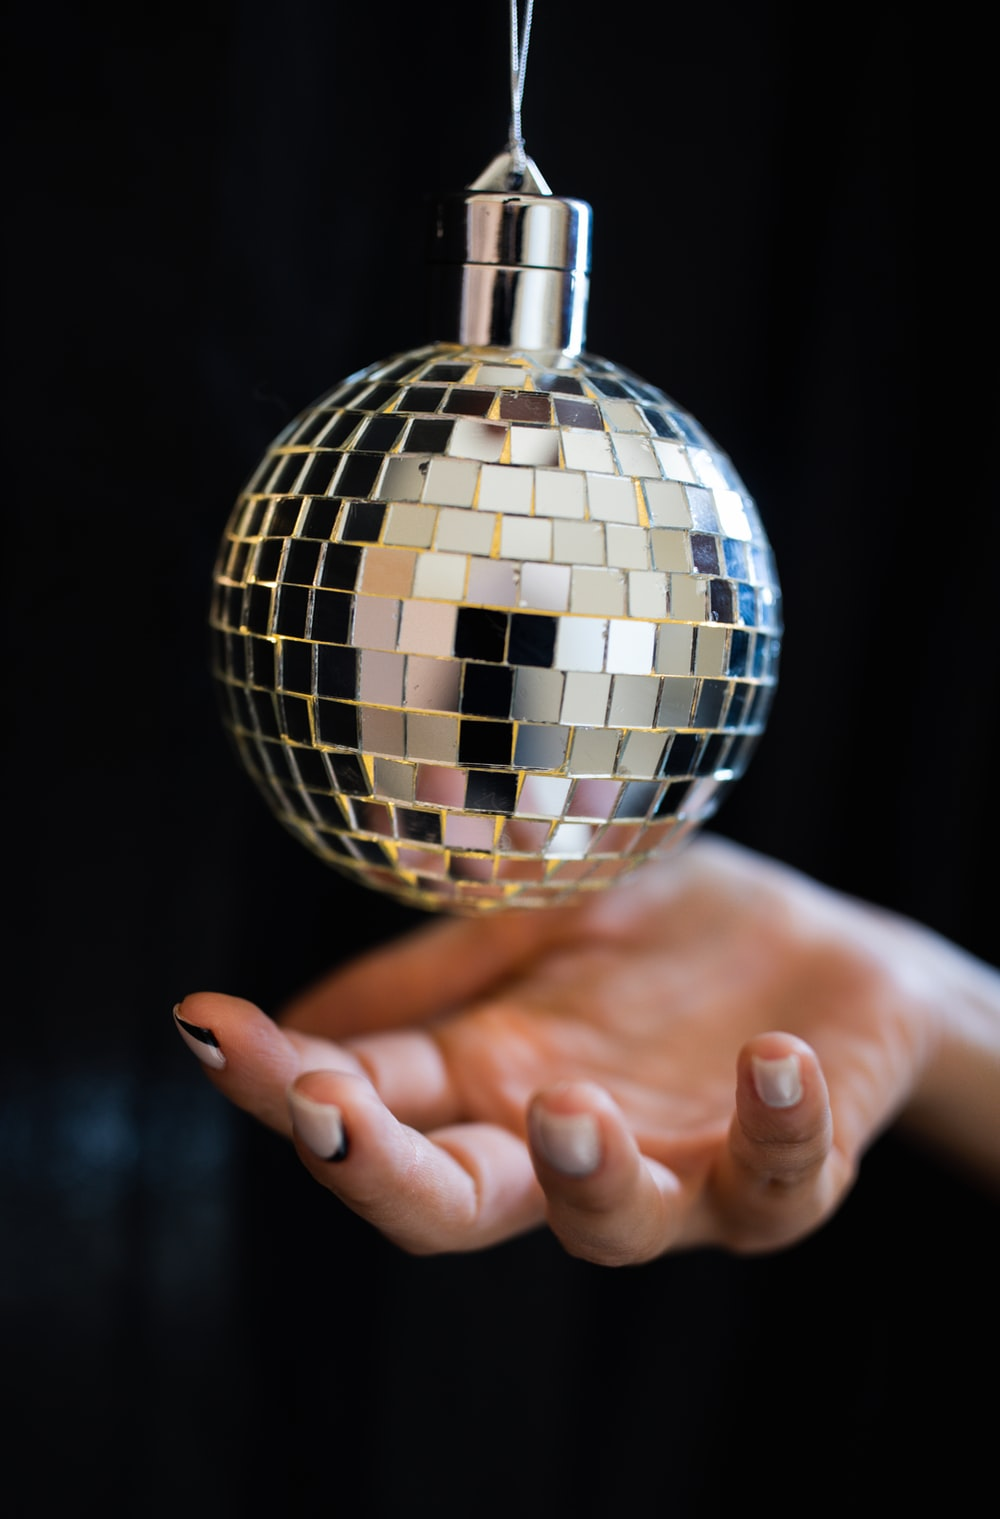 person holding silver and black ball